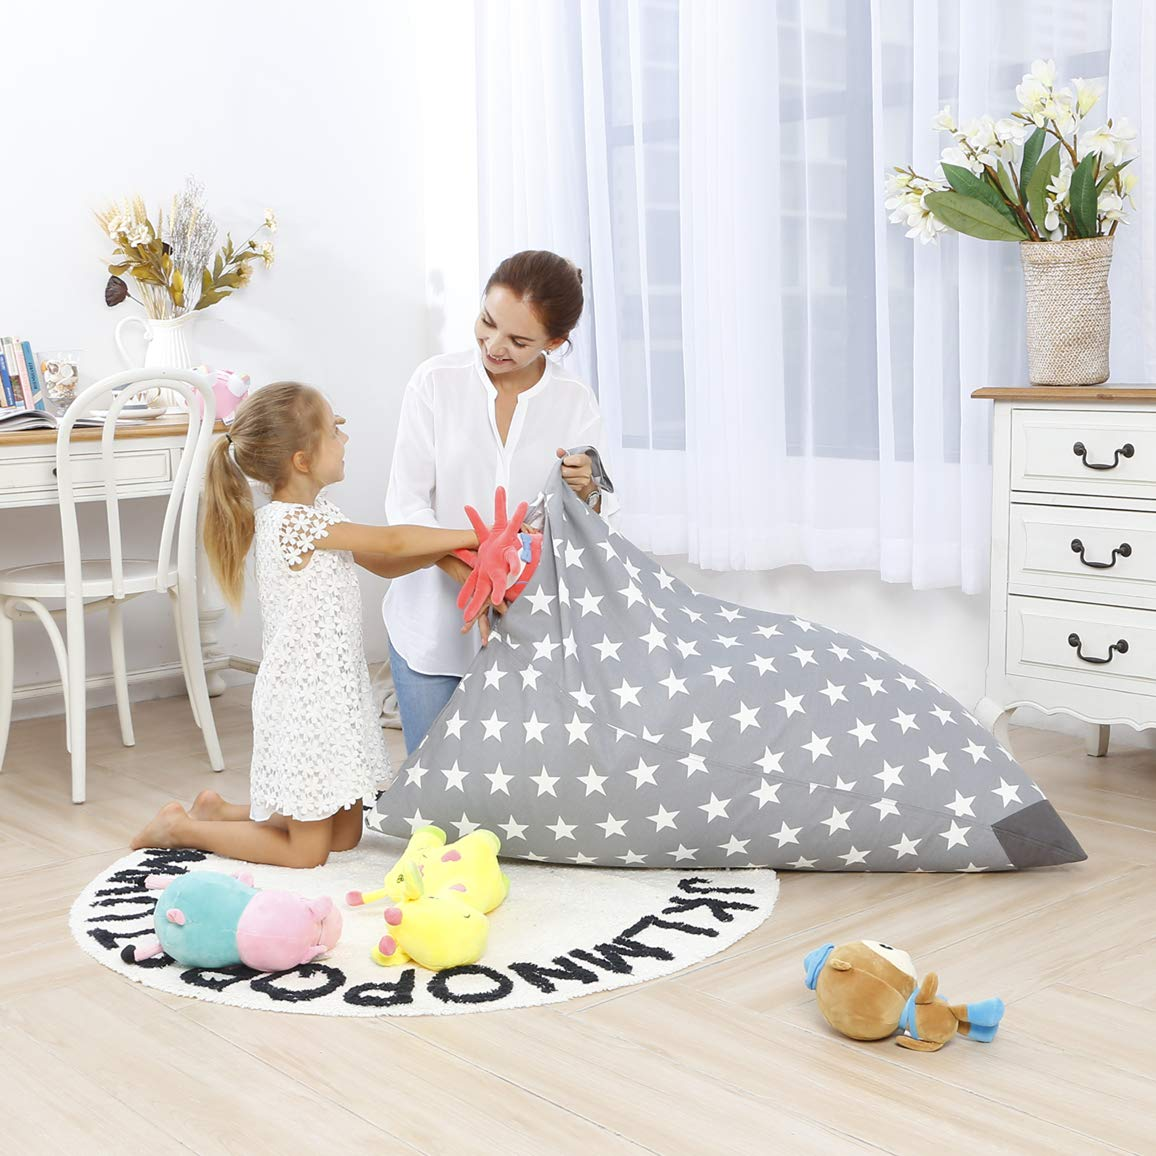 Aubliss Stuffed Animal Storage Bean Bag Chair - Plush Animal Toy Organizer for Kids, Girls and Children | Extra Large | 23 Inch Long YKK Zipper | Premium Cotton Canvas by Aubliss